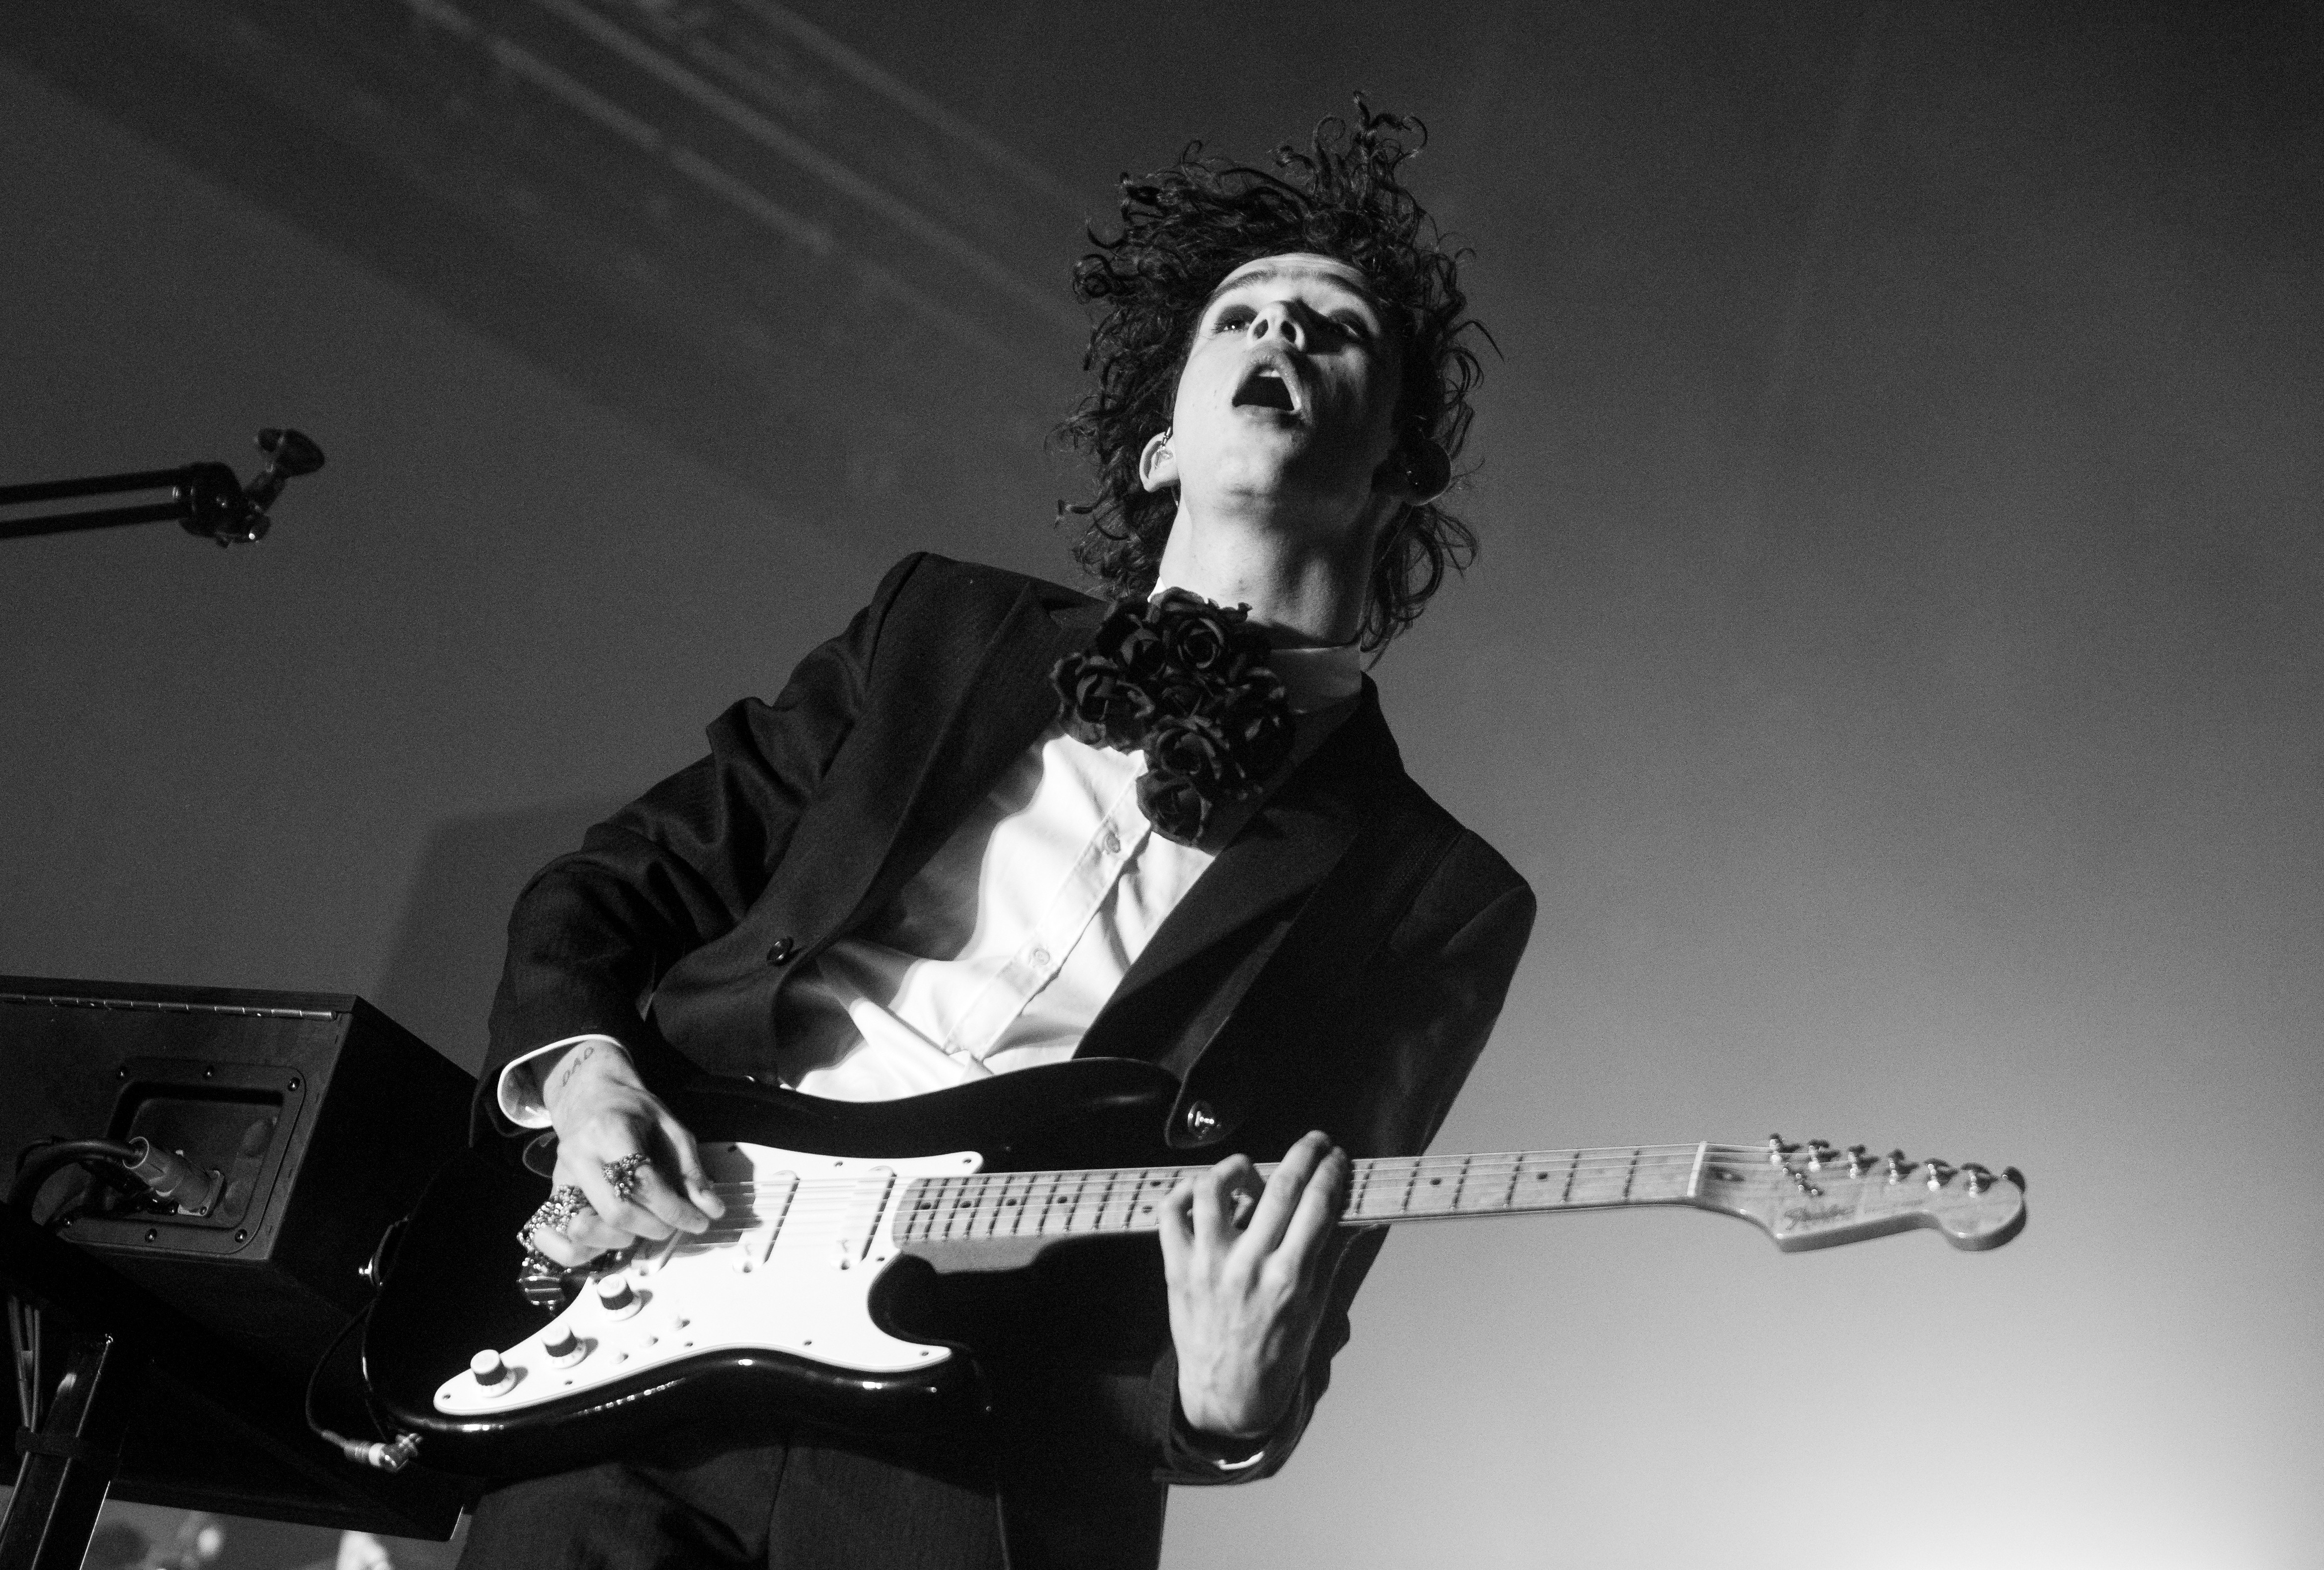 the-1975-matty-healy-has-big-plans-to-wrap-world-tour-with-a-bang